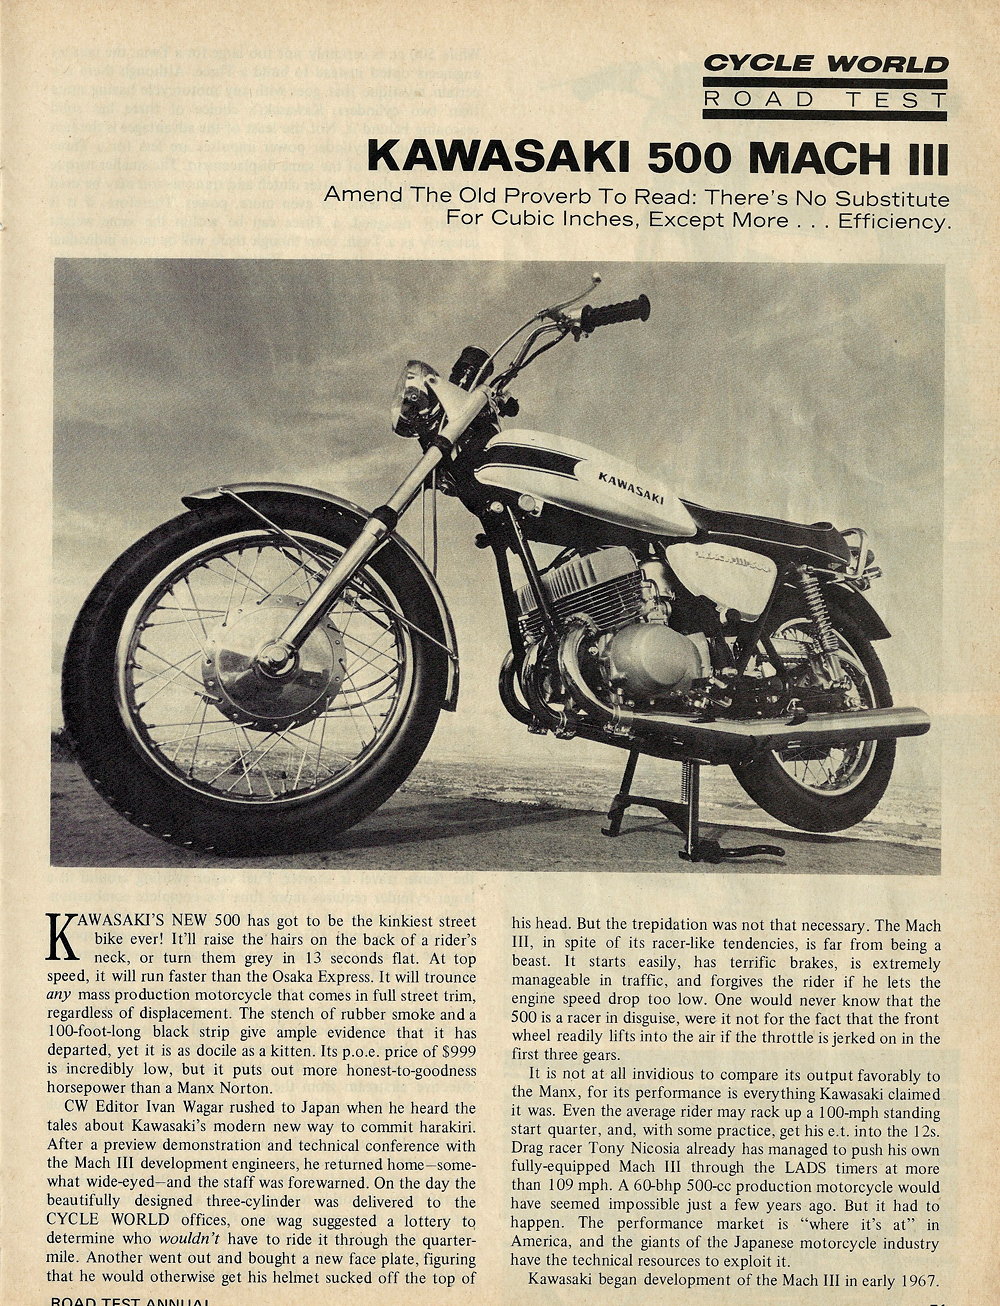 1969 Kawasaki 500 Mach 3 road test 1.jpg